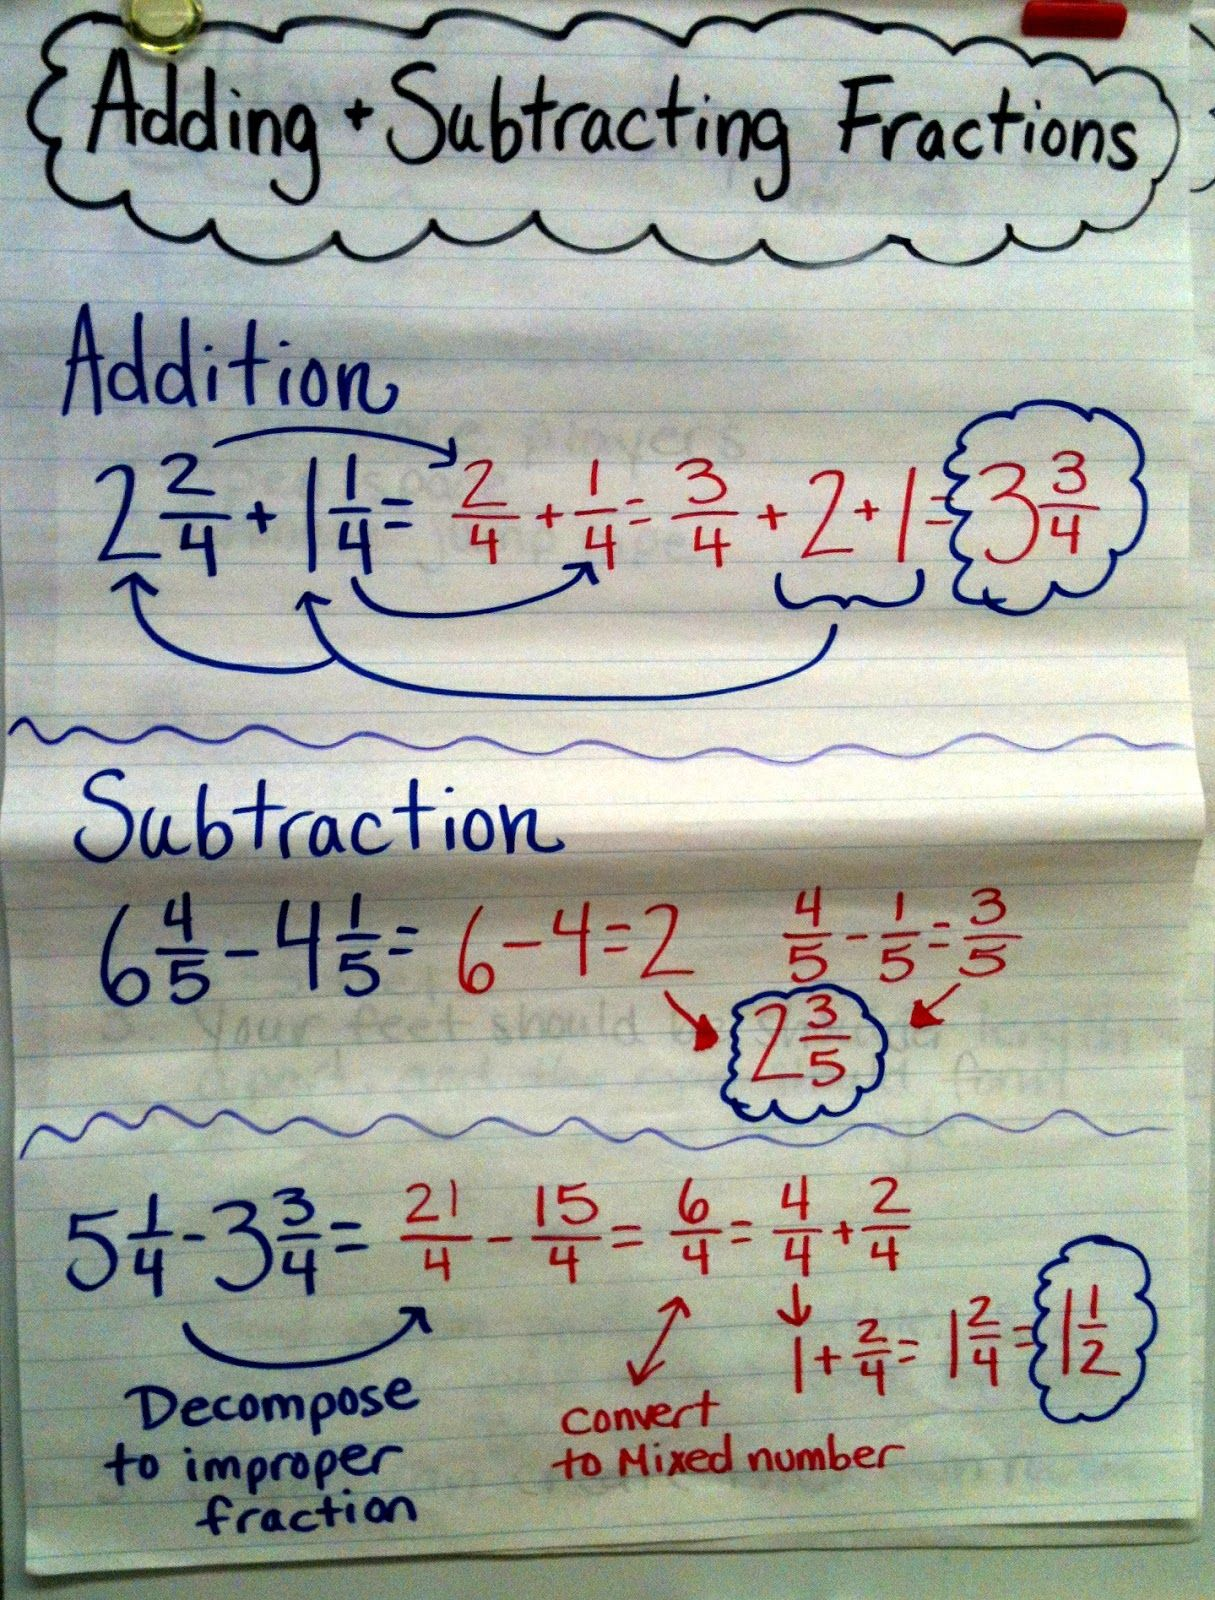 adding & subtracting mixed #'s anchor chart | anchor charts for math